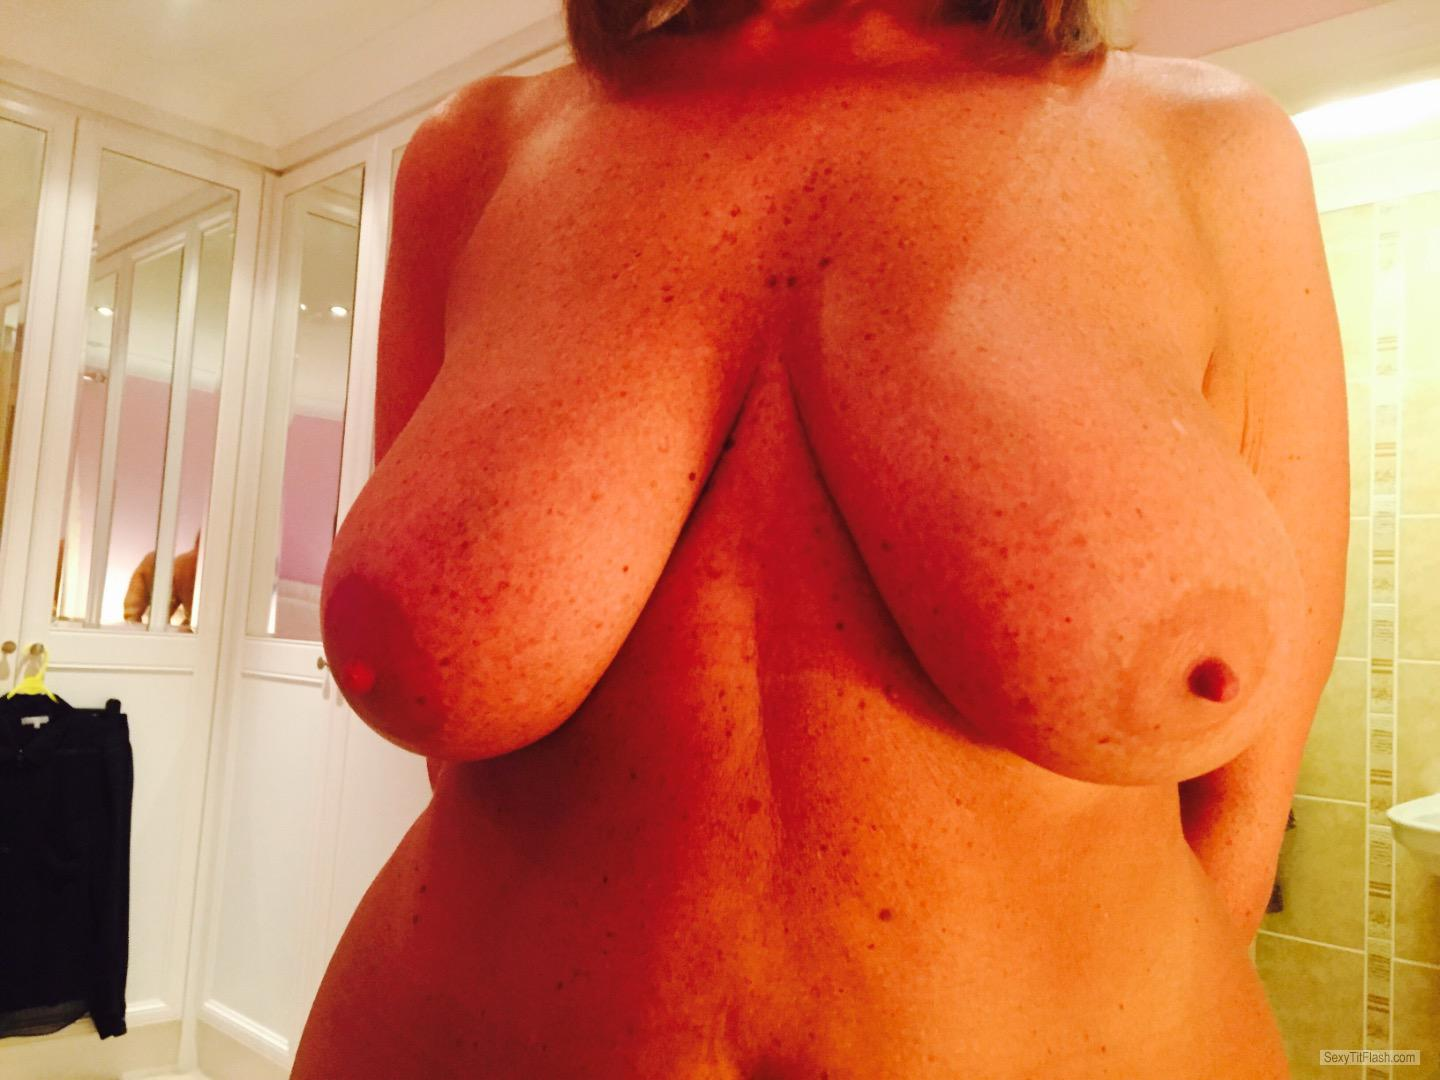 Tit Flash: My Big Tits (Selfie) - Flirt from United States